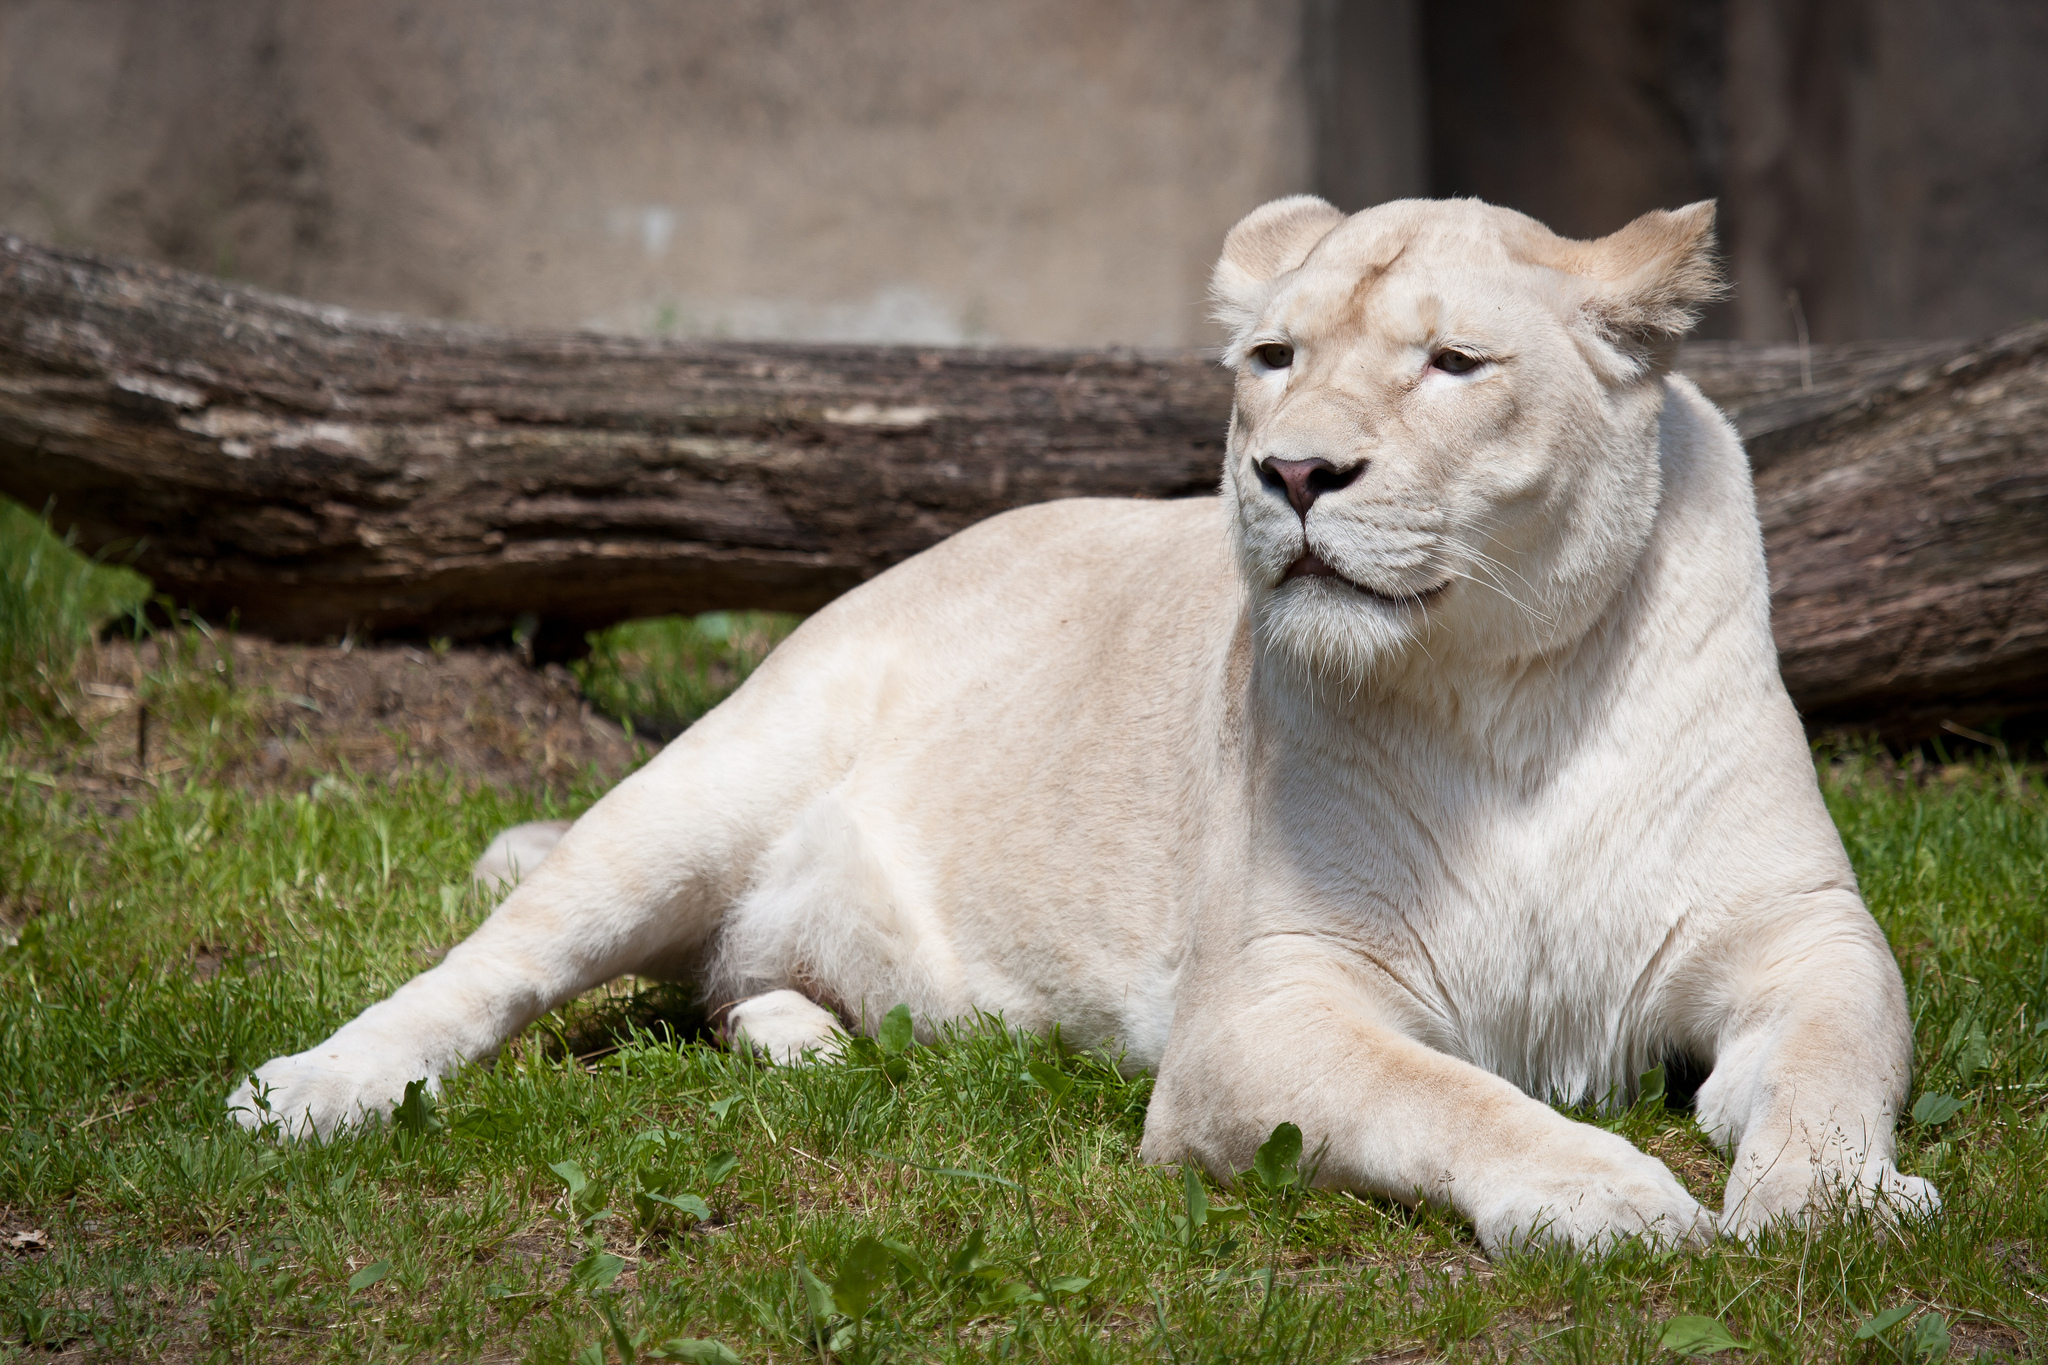 White Lion Full HD Wallpaper and Background Image ...